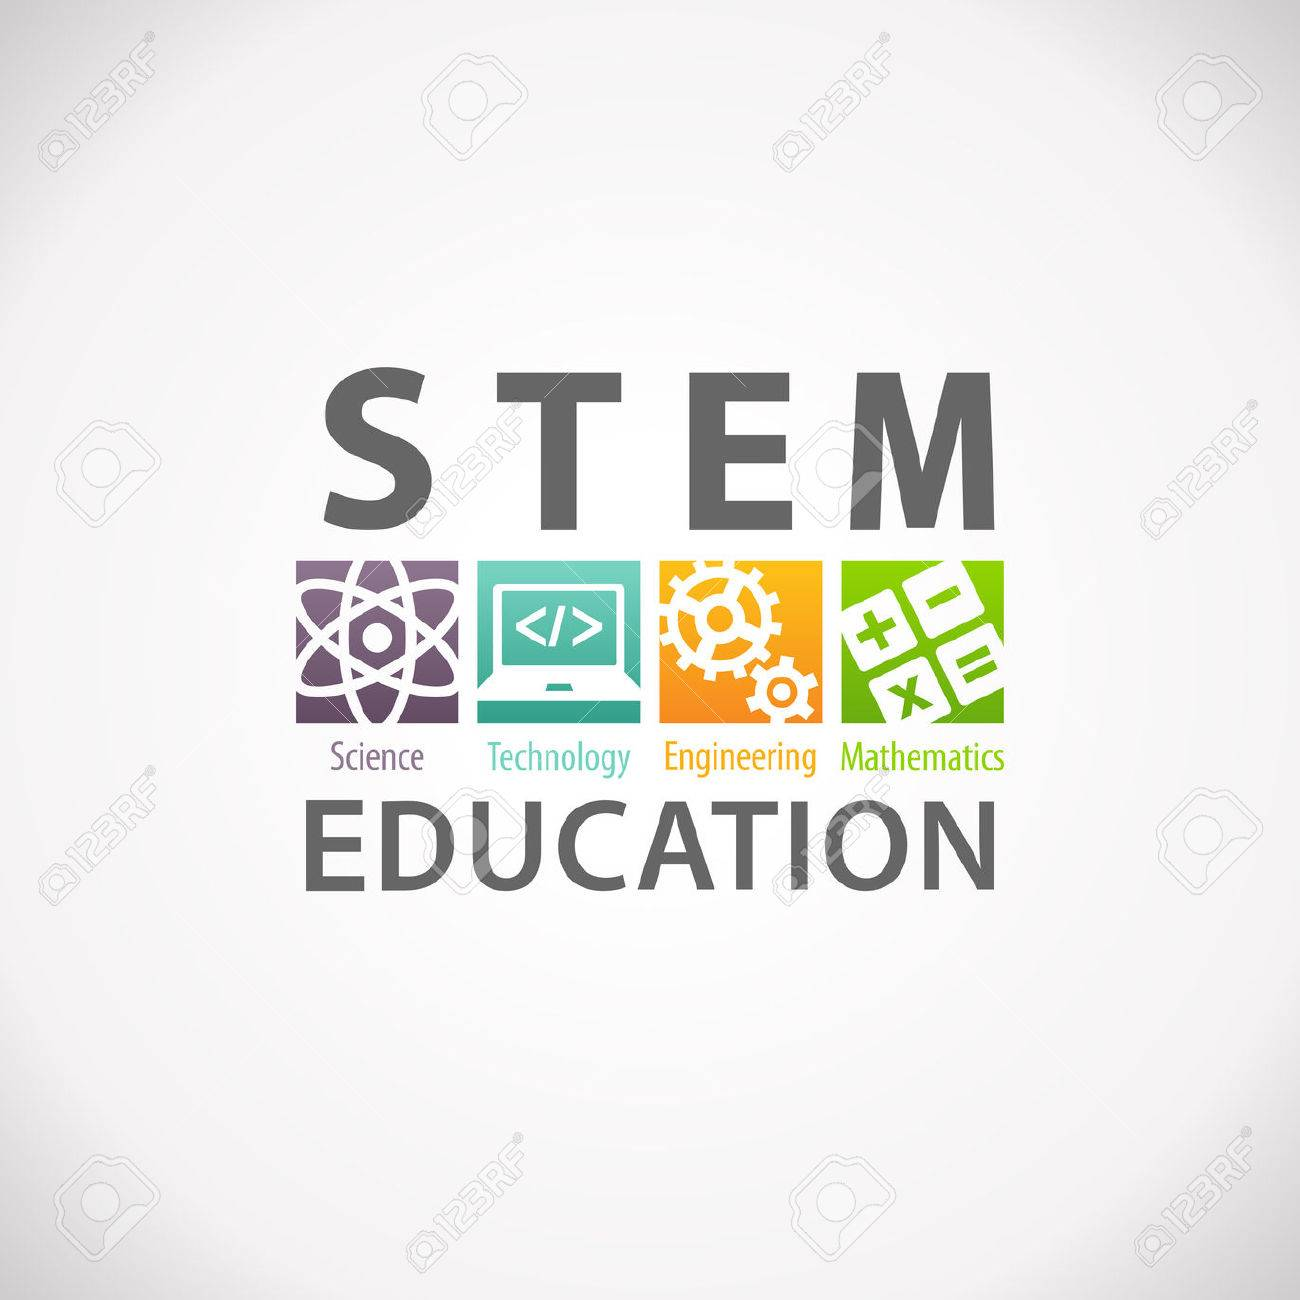 Stem Education Concept Logo Science Technology Engineering Mathematics Stock Photo Picture And Royalty Free Image Image 66088148